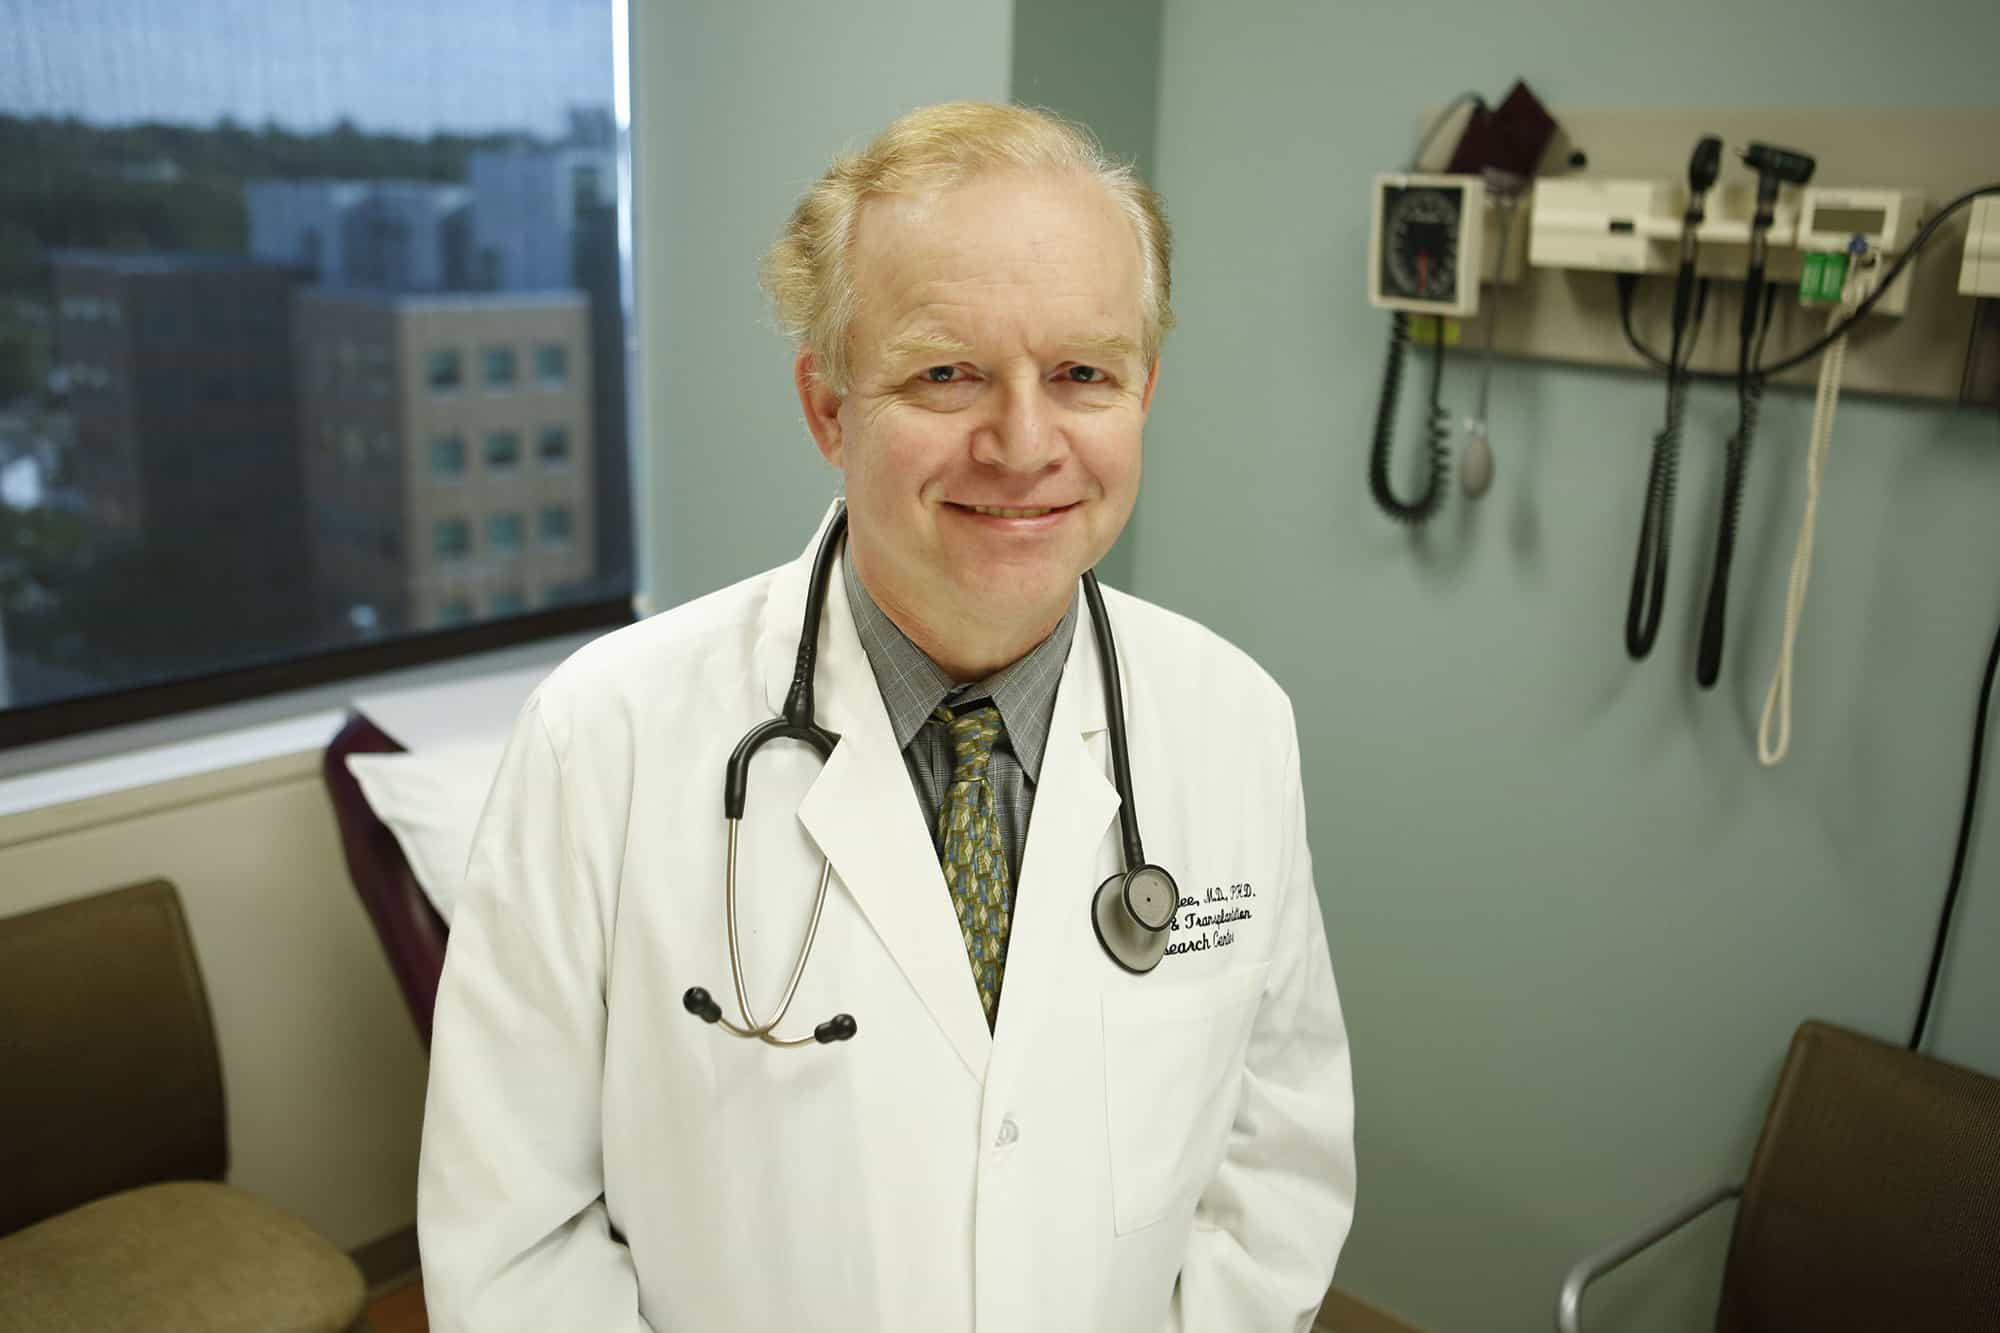 Frits van Rhee, M.D., Ph.D., a myeloma researcher and clinician at the University of Arkansas for Medical Sciences, recently led an international medical team in establishing treatment guidelines for Castleman disease, a rare disorder of the lymph nodes and related tissues.